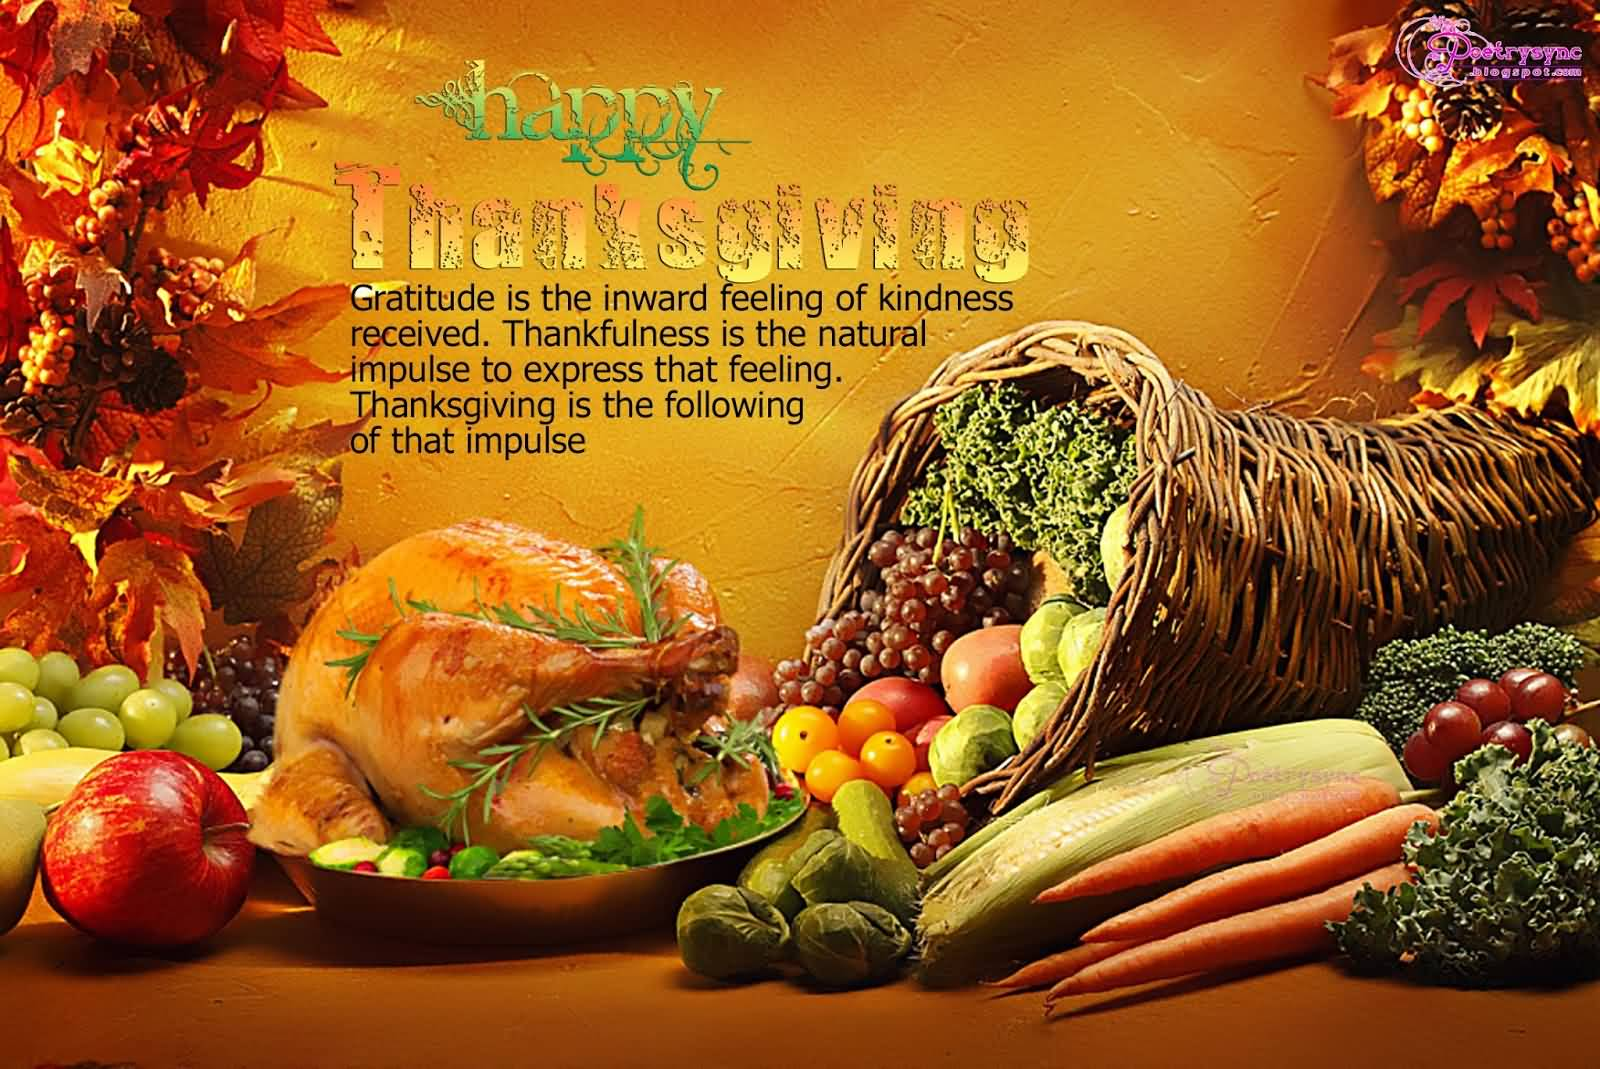 Cordial Kindness Receivedwishes Latest Happy Thanksgiving Day 2016 Greeting S Girlfriend S Happy Thanksgiving Quotes Happy Thanksgiving Gratitude Is Inward Feeling Images Happy Thanksgiving Quotes inspiration Happy Thanksgiving Quotes